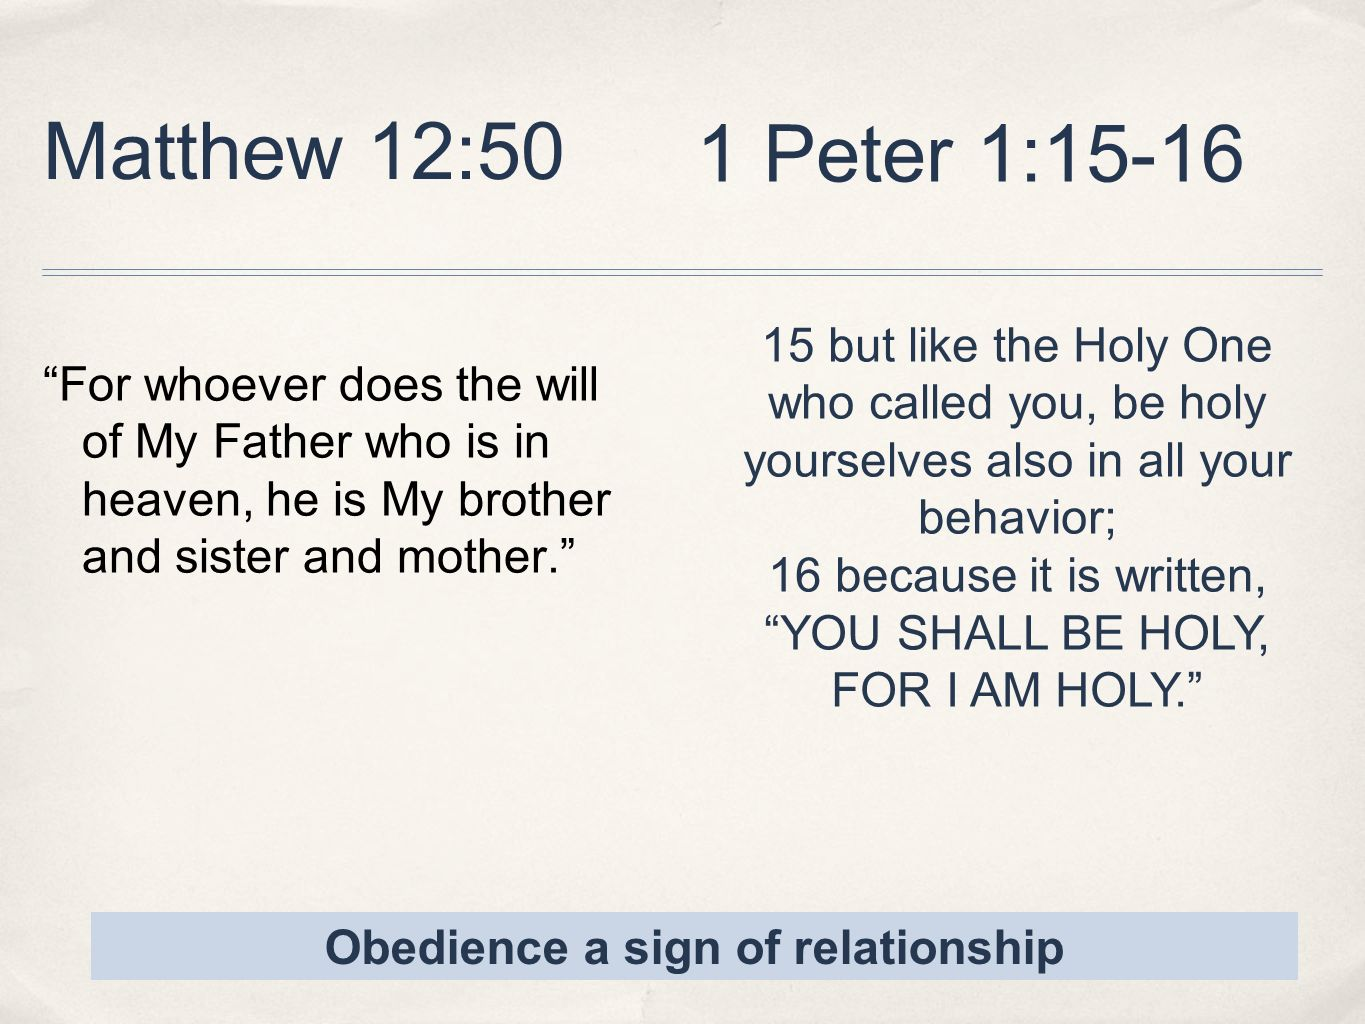 Obedience a sign of relationship